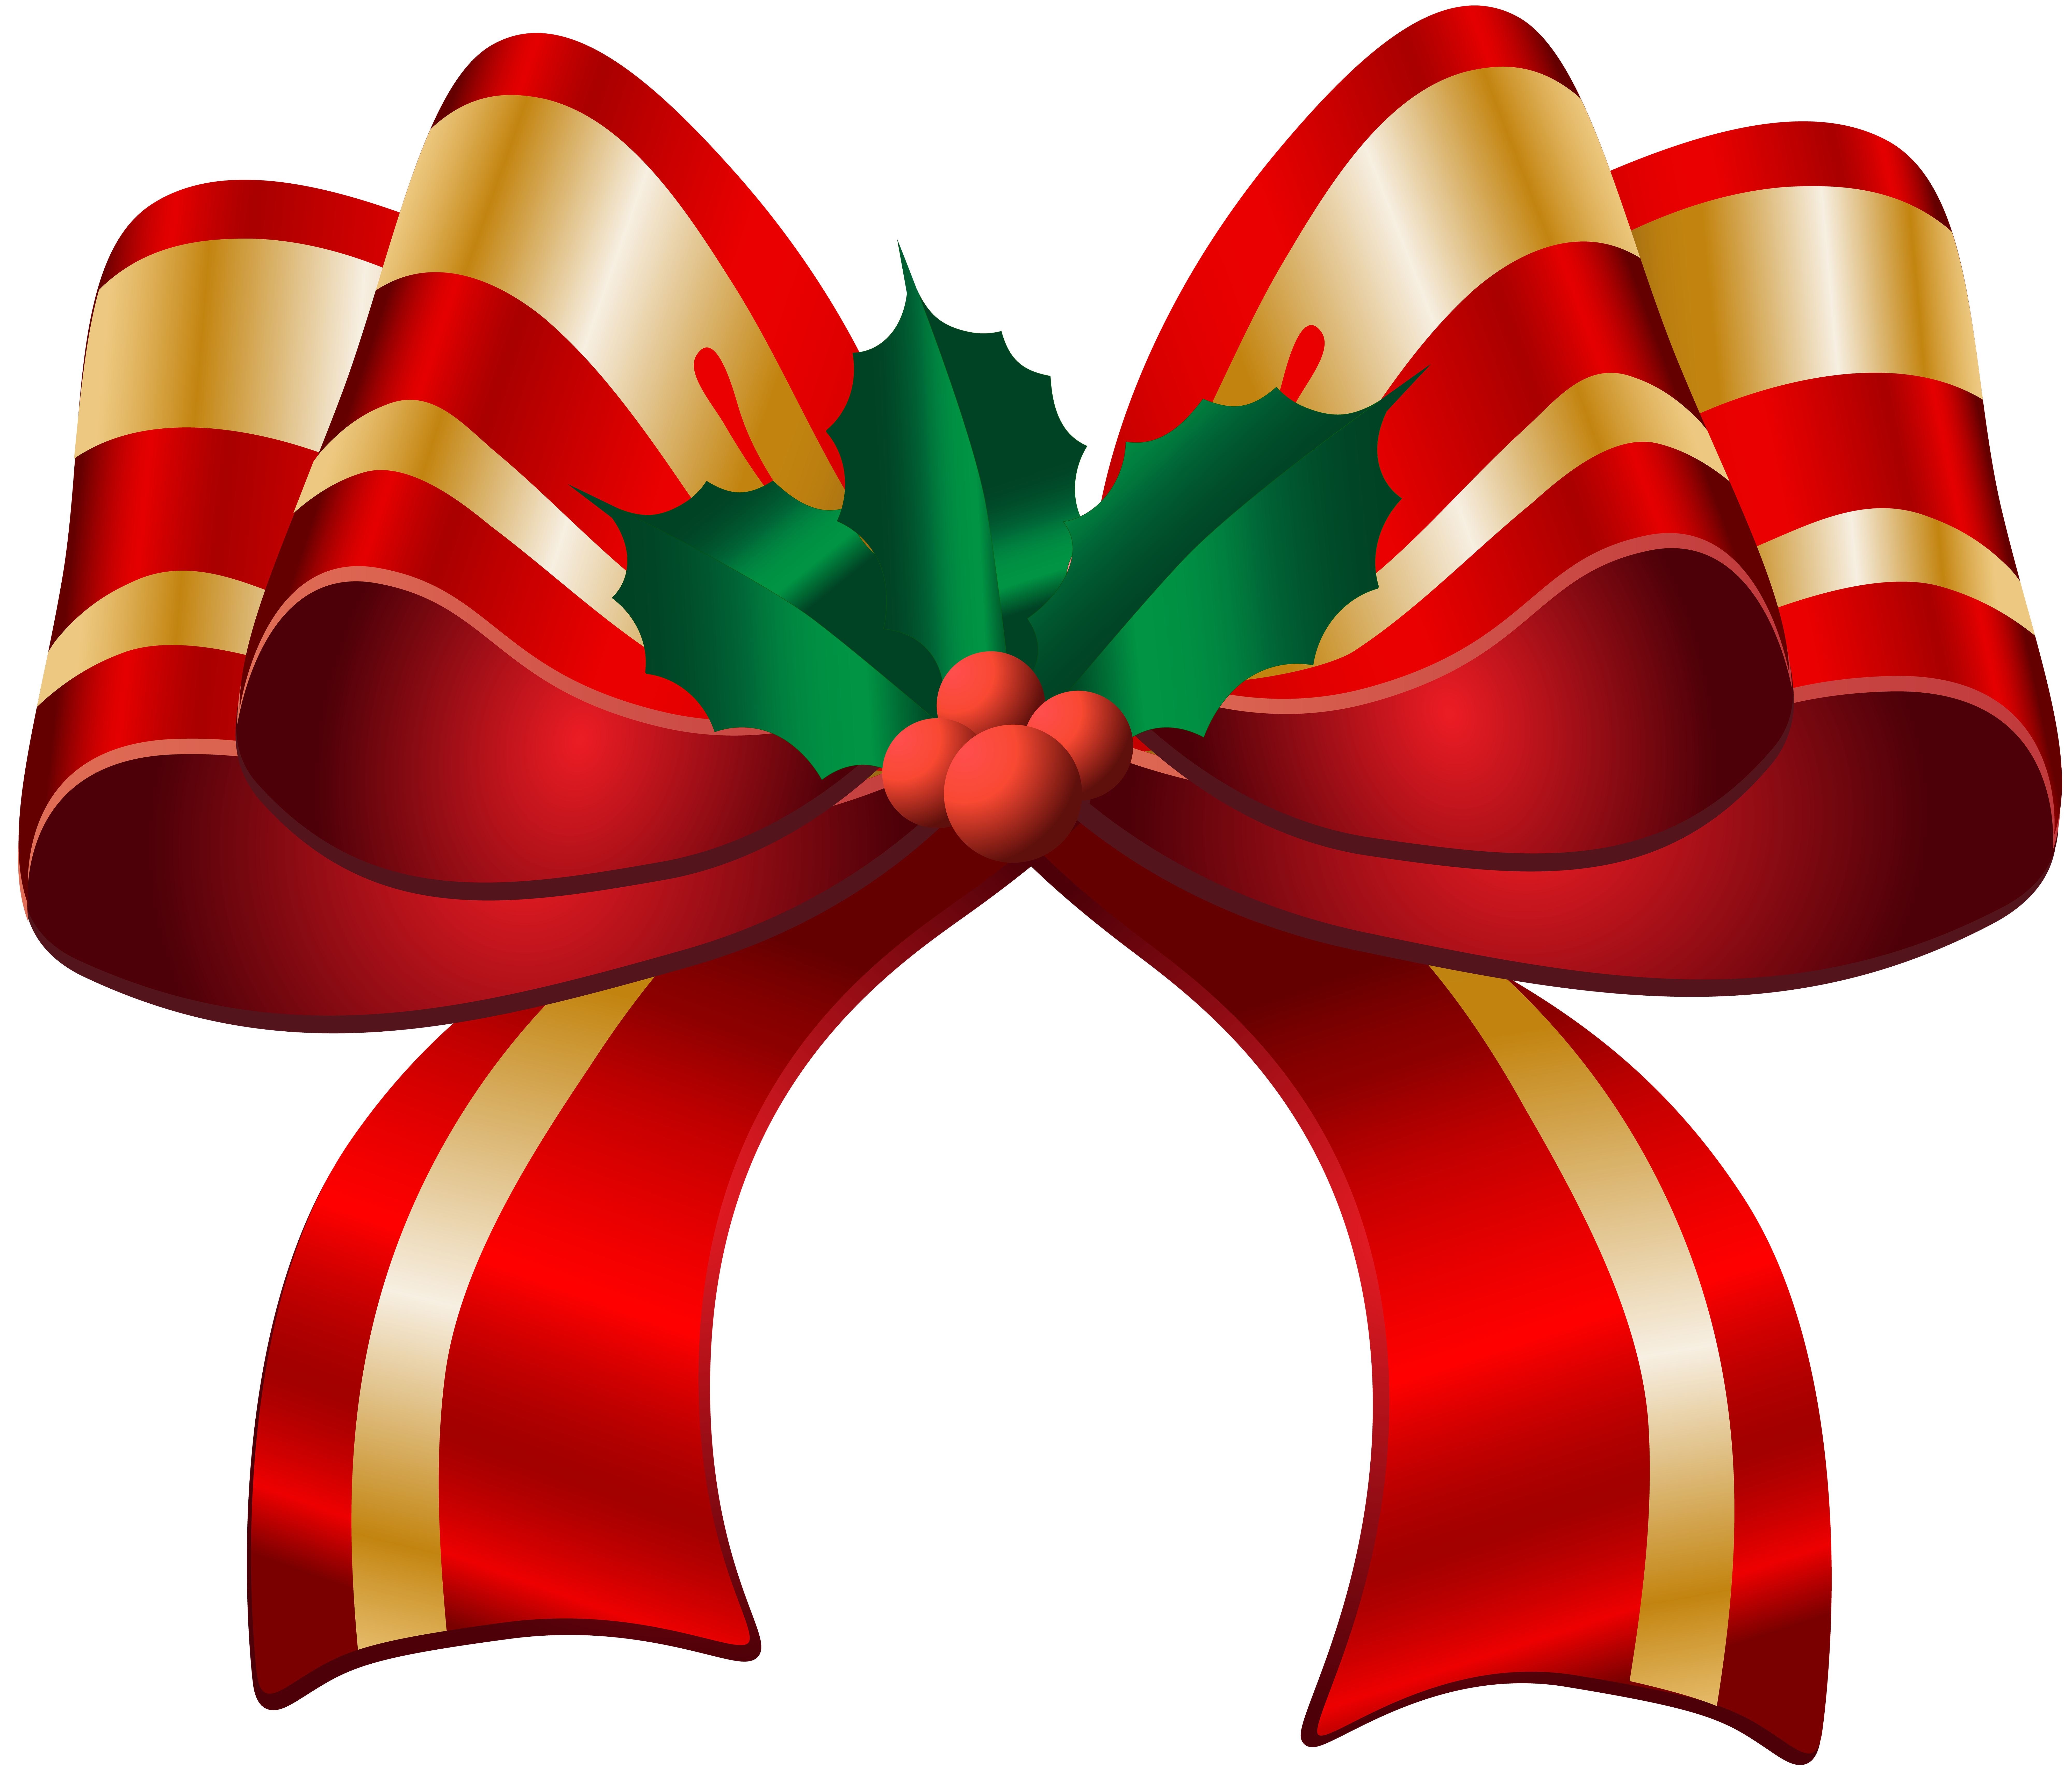 Christmas ribbons clipart vector transparent Free Christmas Bow Cliparts, Download Free Clip Art, Free Clip Art ... vector transparent